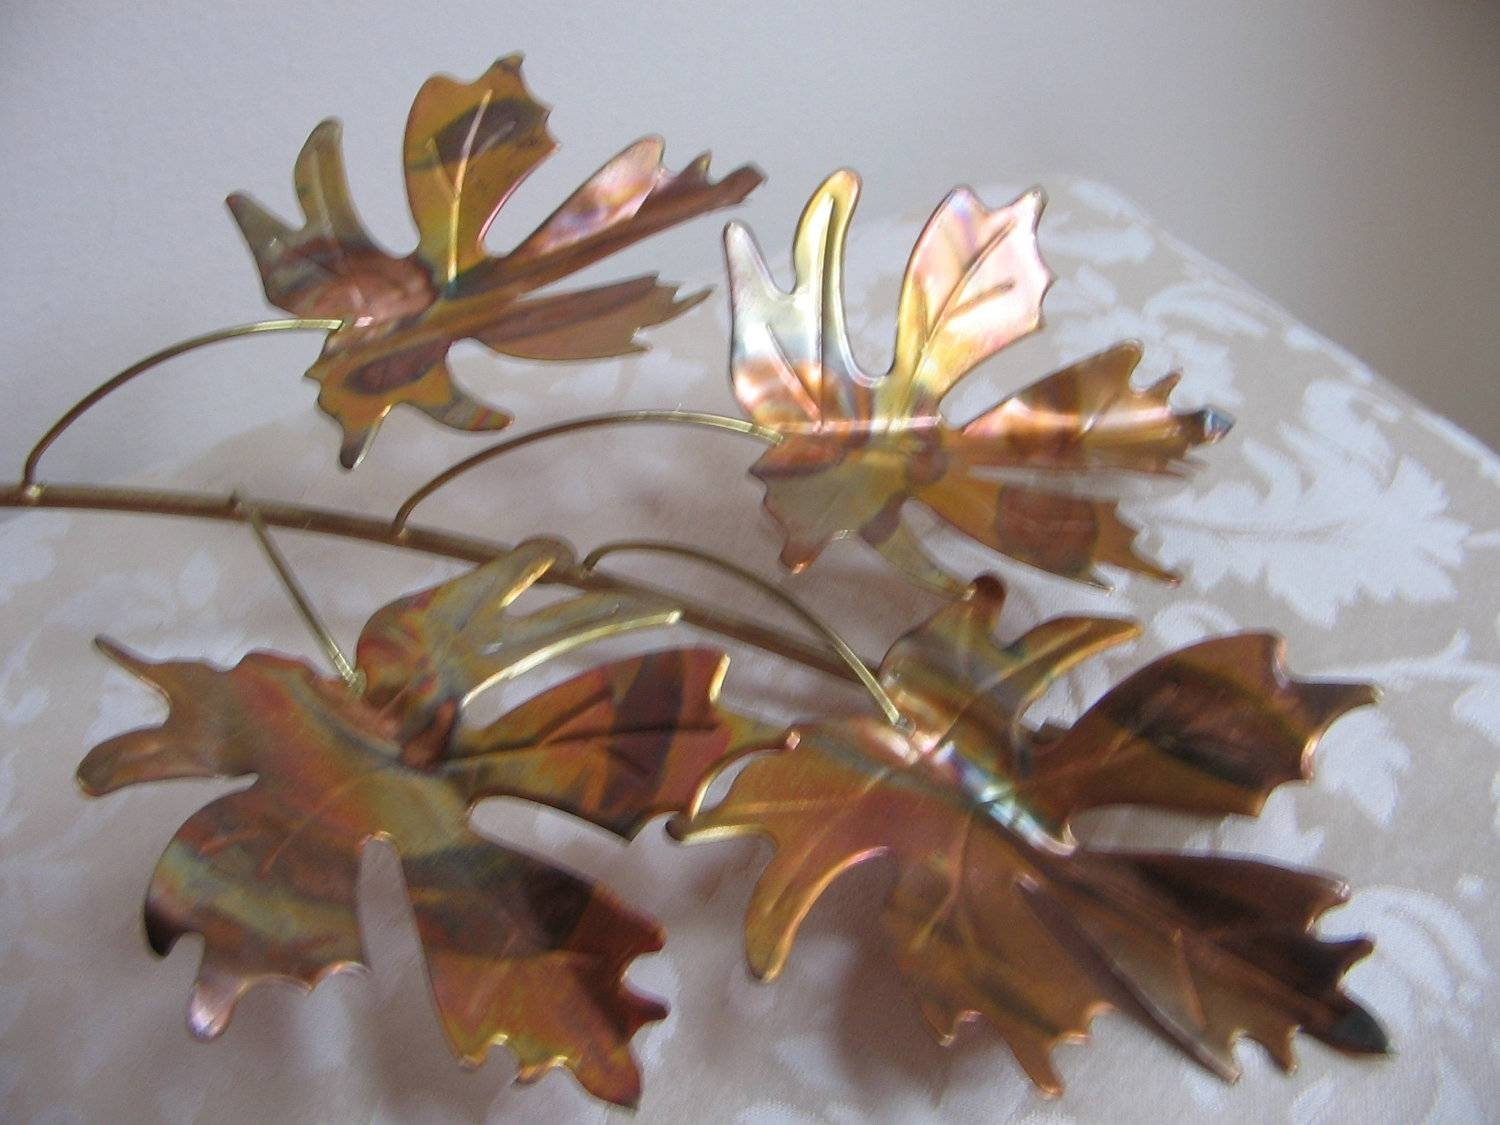 Leaf Metal Wall Decor With Vintage Metal Leaves Wall Art Copper Pertaining To Most Popular Vintage Metal Wall Art (View 8 of 20)